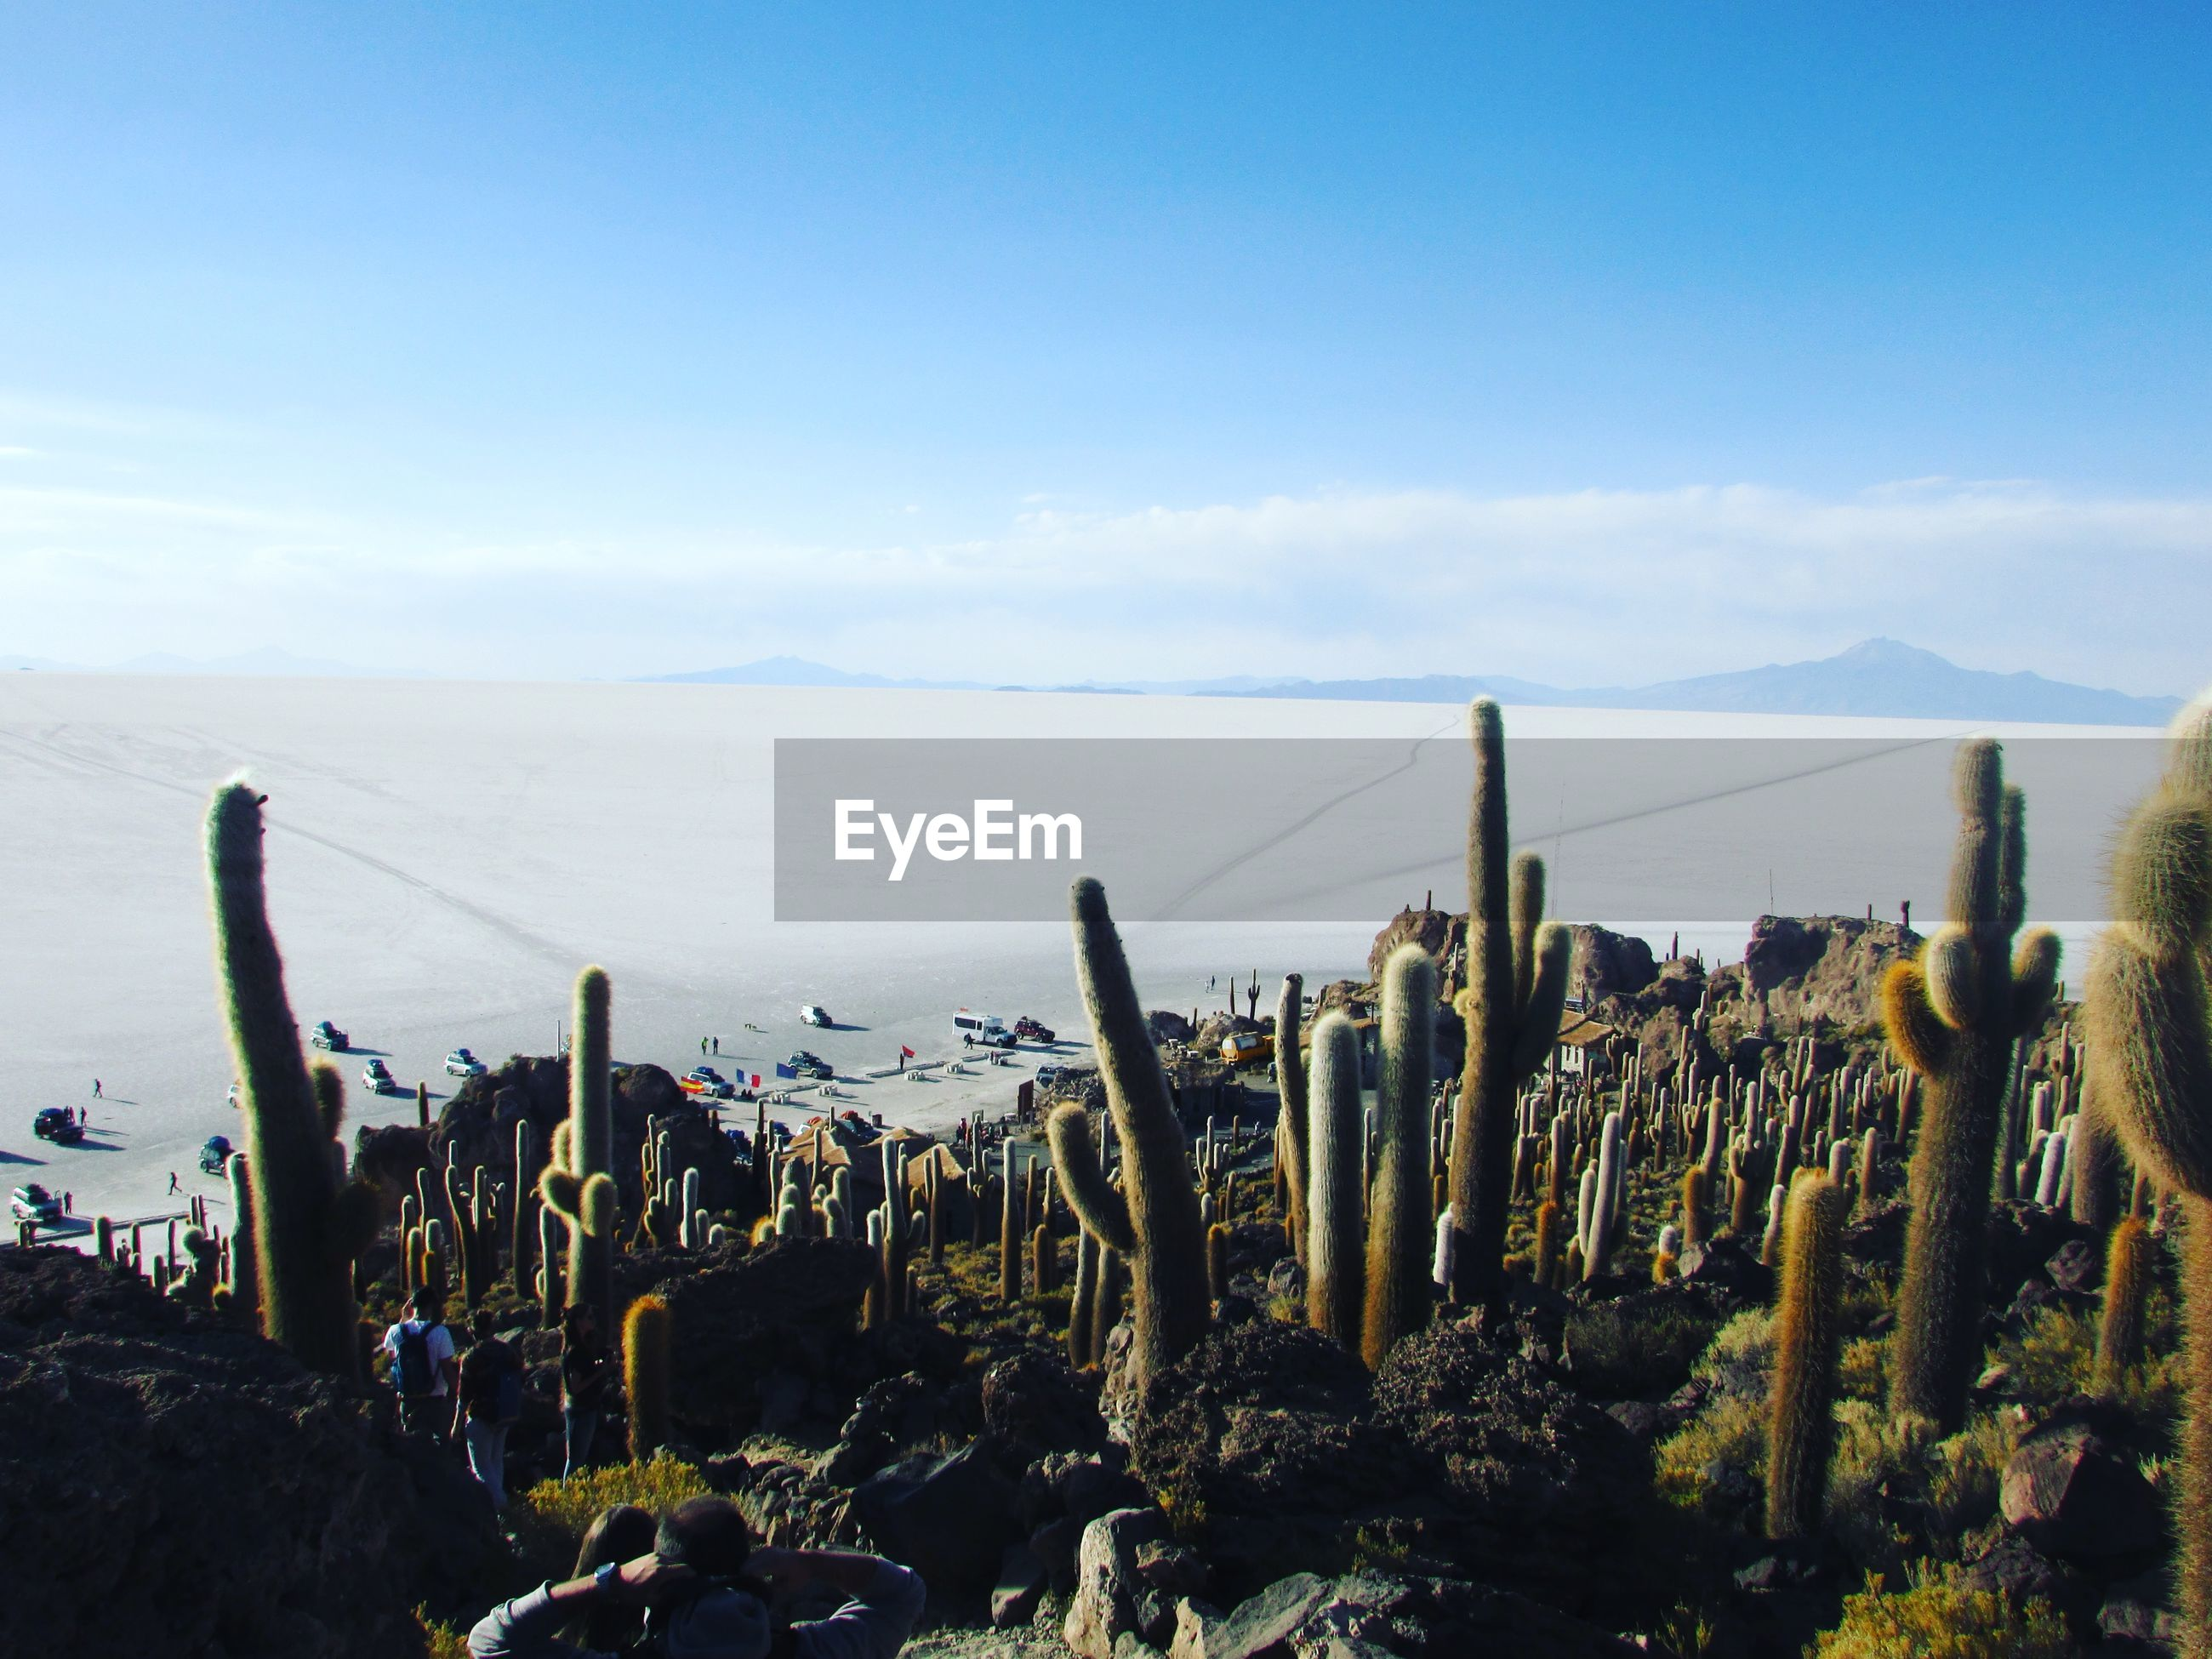 plant, cactus, water, sky, growth, sea, tranquility, close-up, tranquil scene, nature, travel destinations, wooden post, scenics, shore, beauty in nature, non-urban scene, thorn, cloud - sky, outdoors, tourism, spiked, focus on foreground, uncultivated, green color, mountain